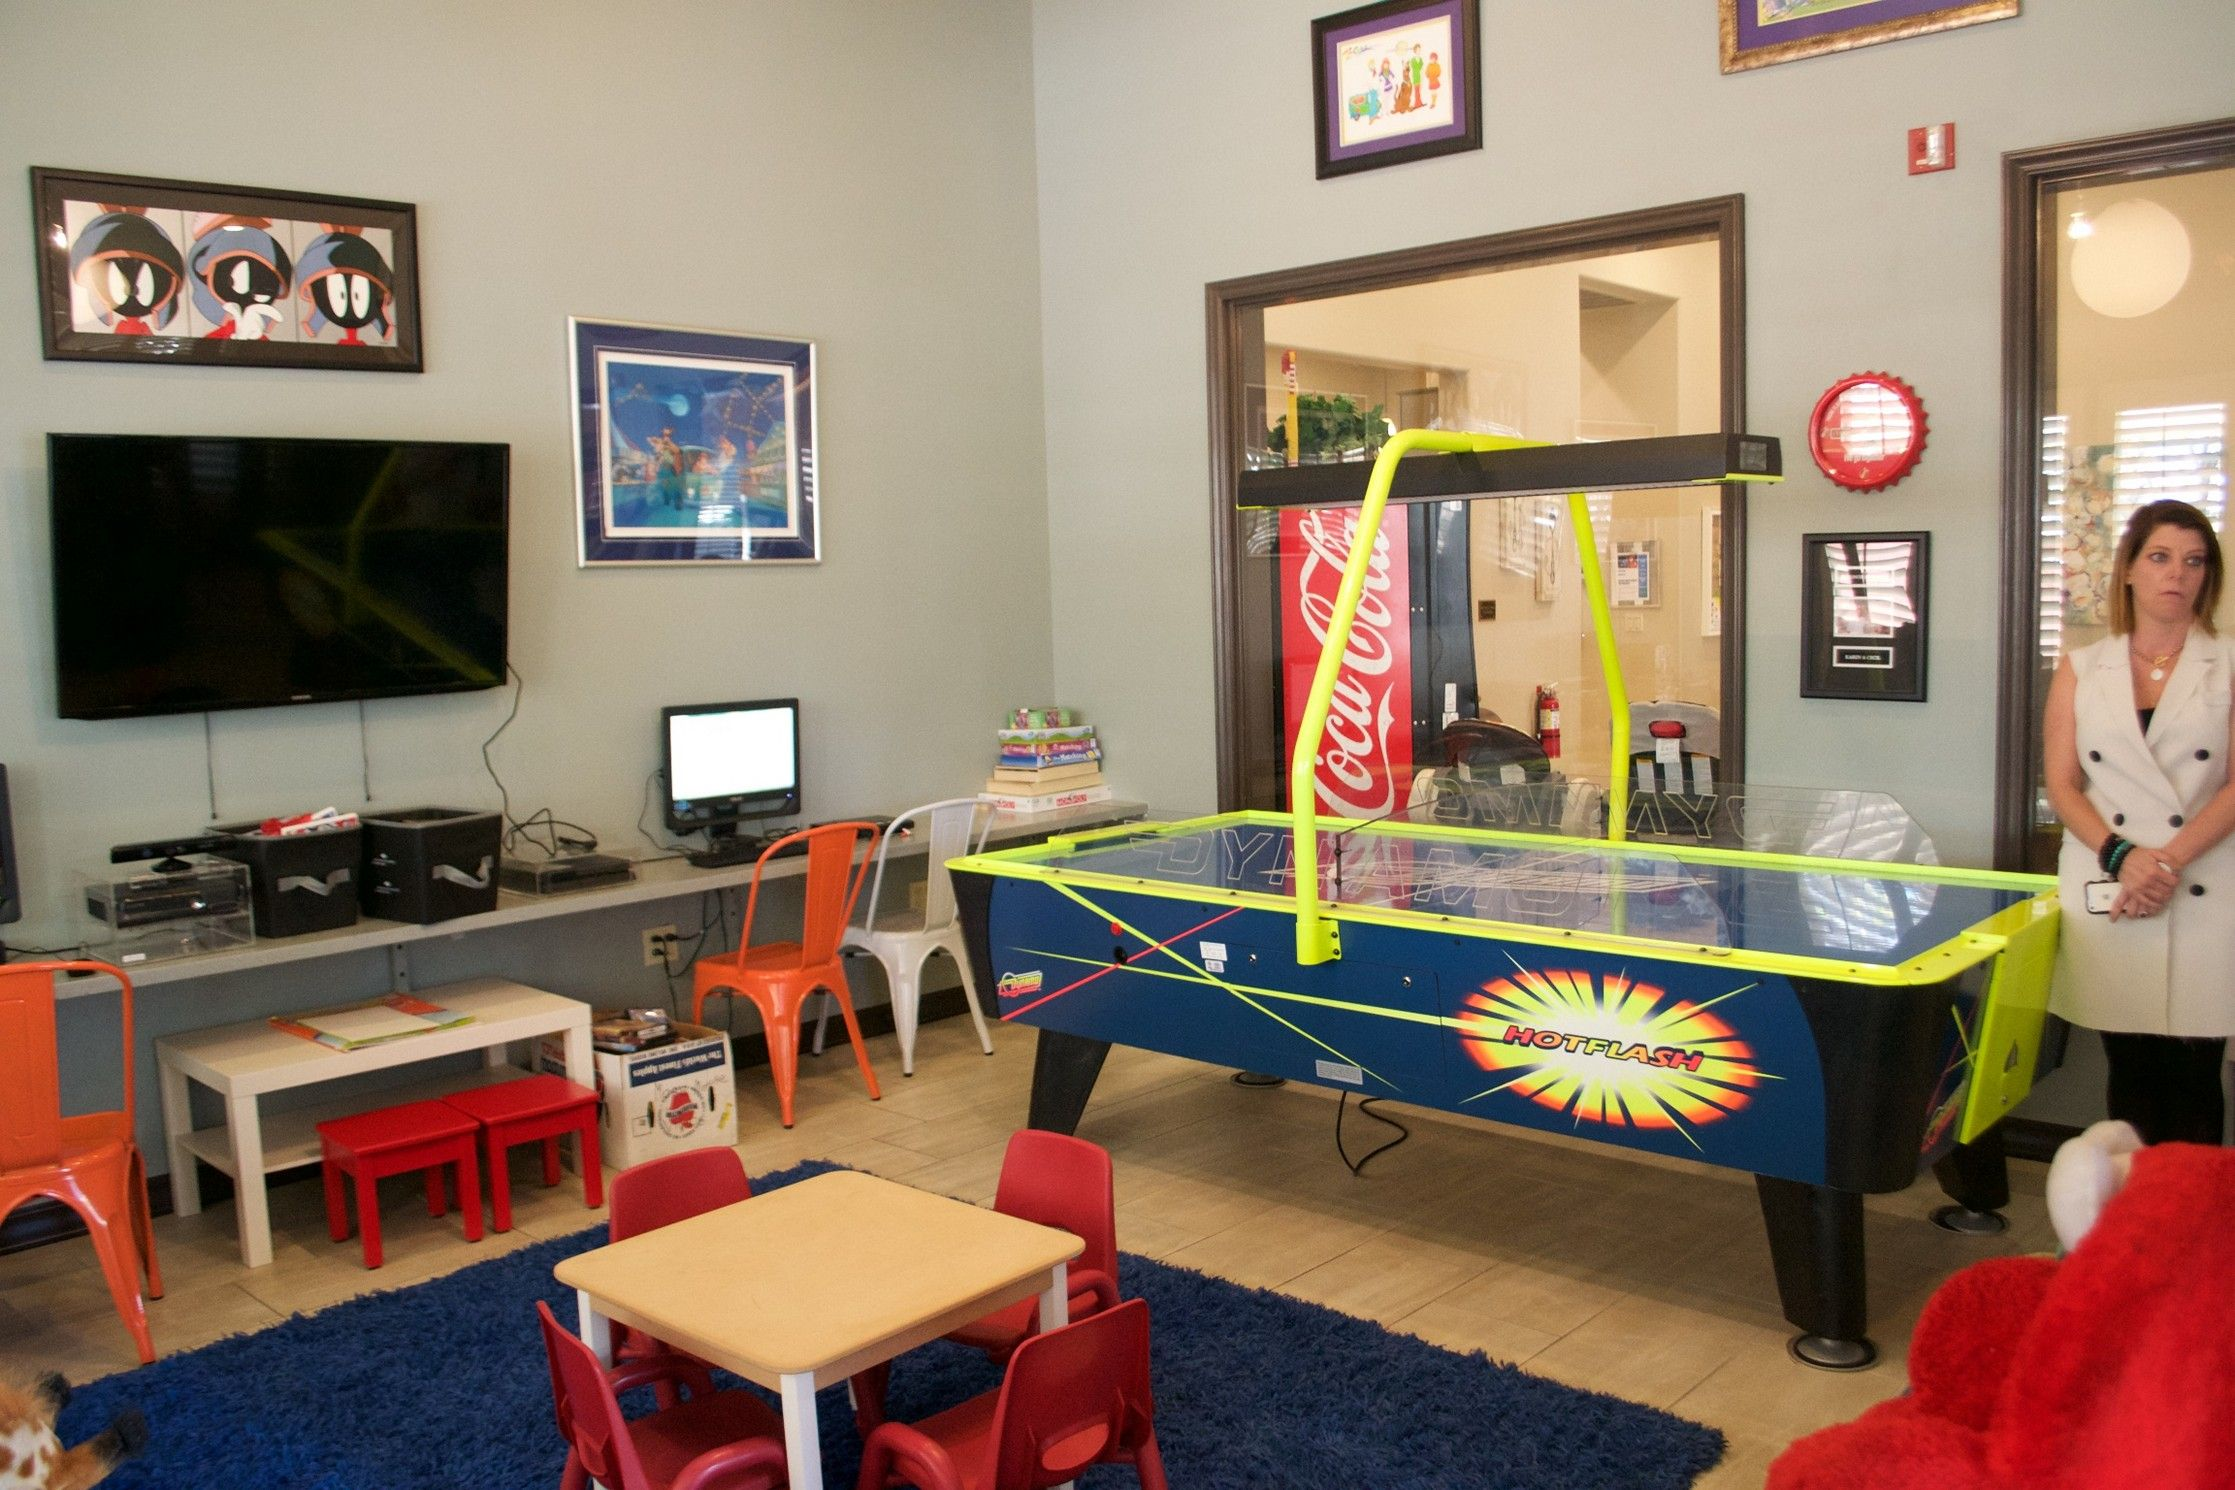 17 Most Popular Video Game Room Ideas [Feel the Awesome